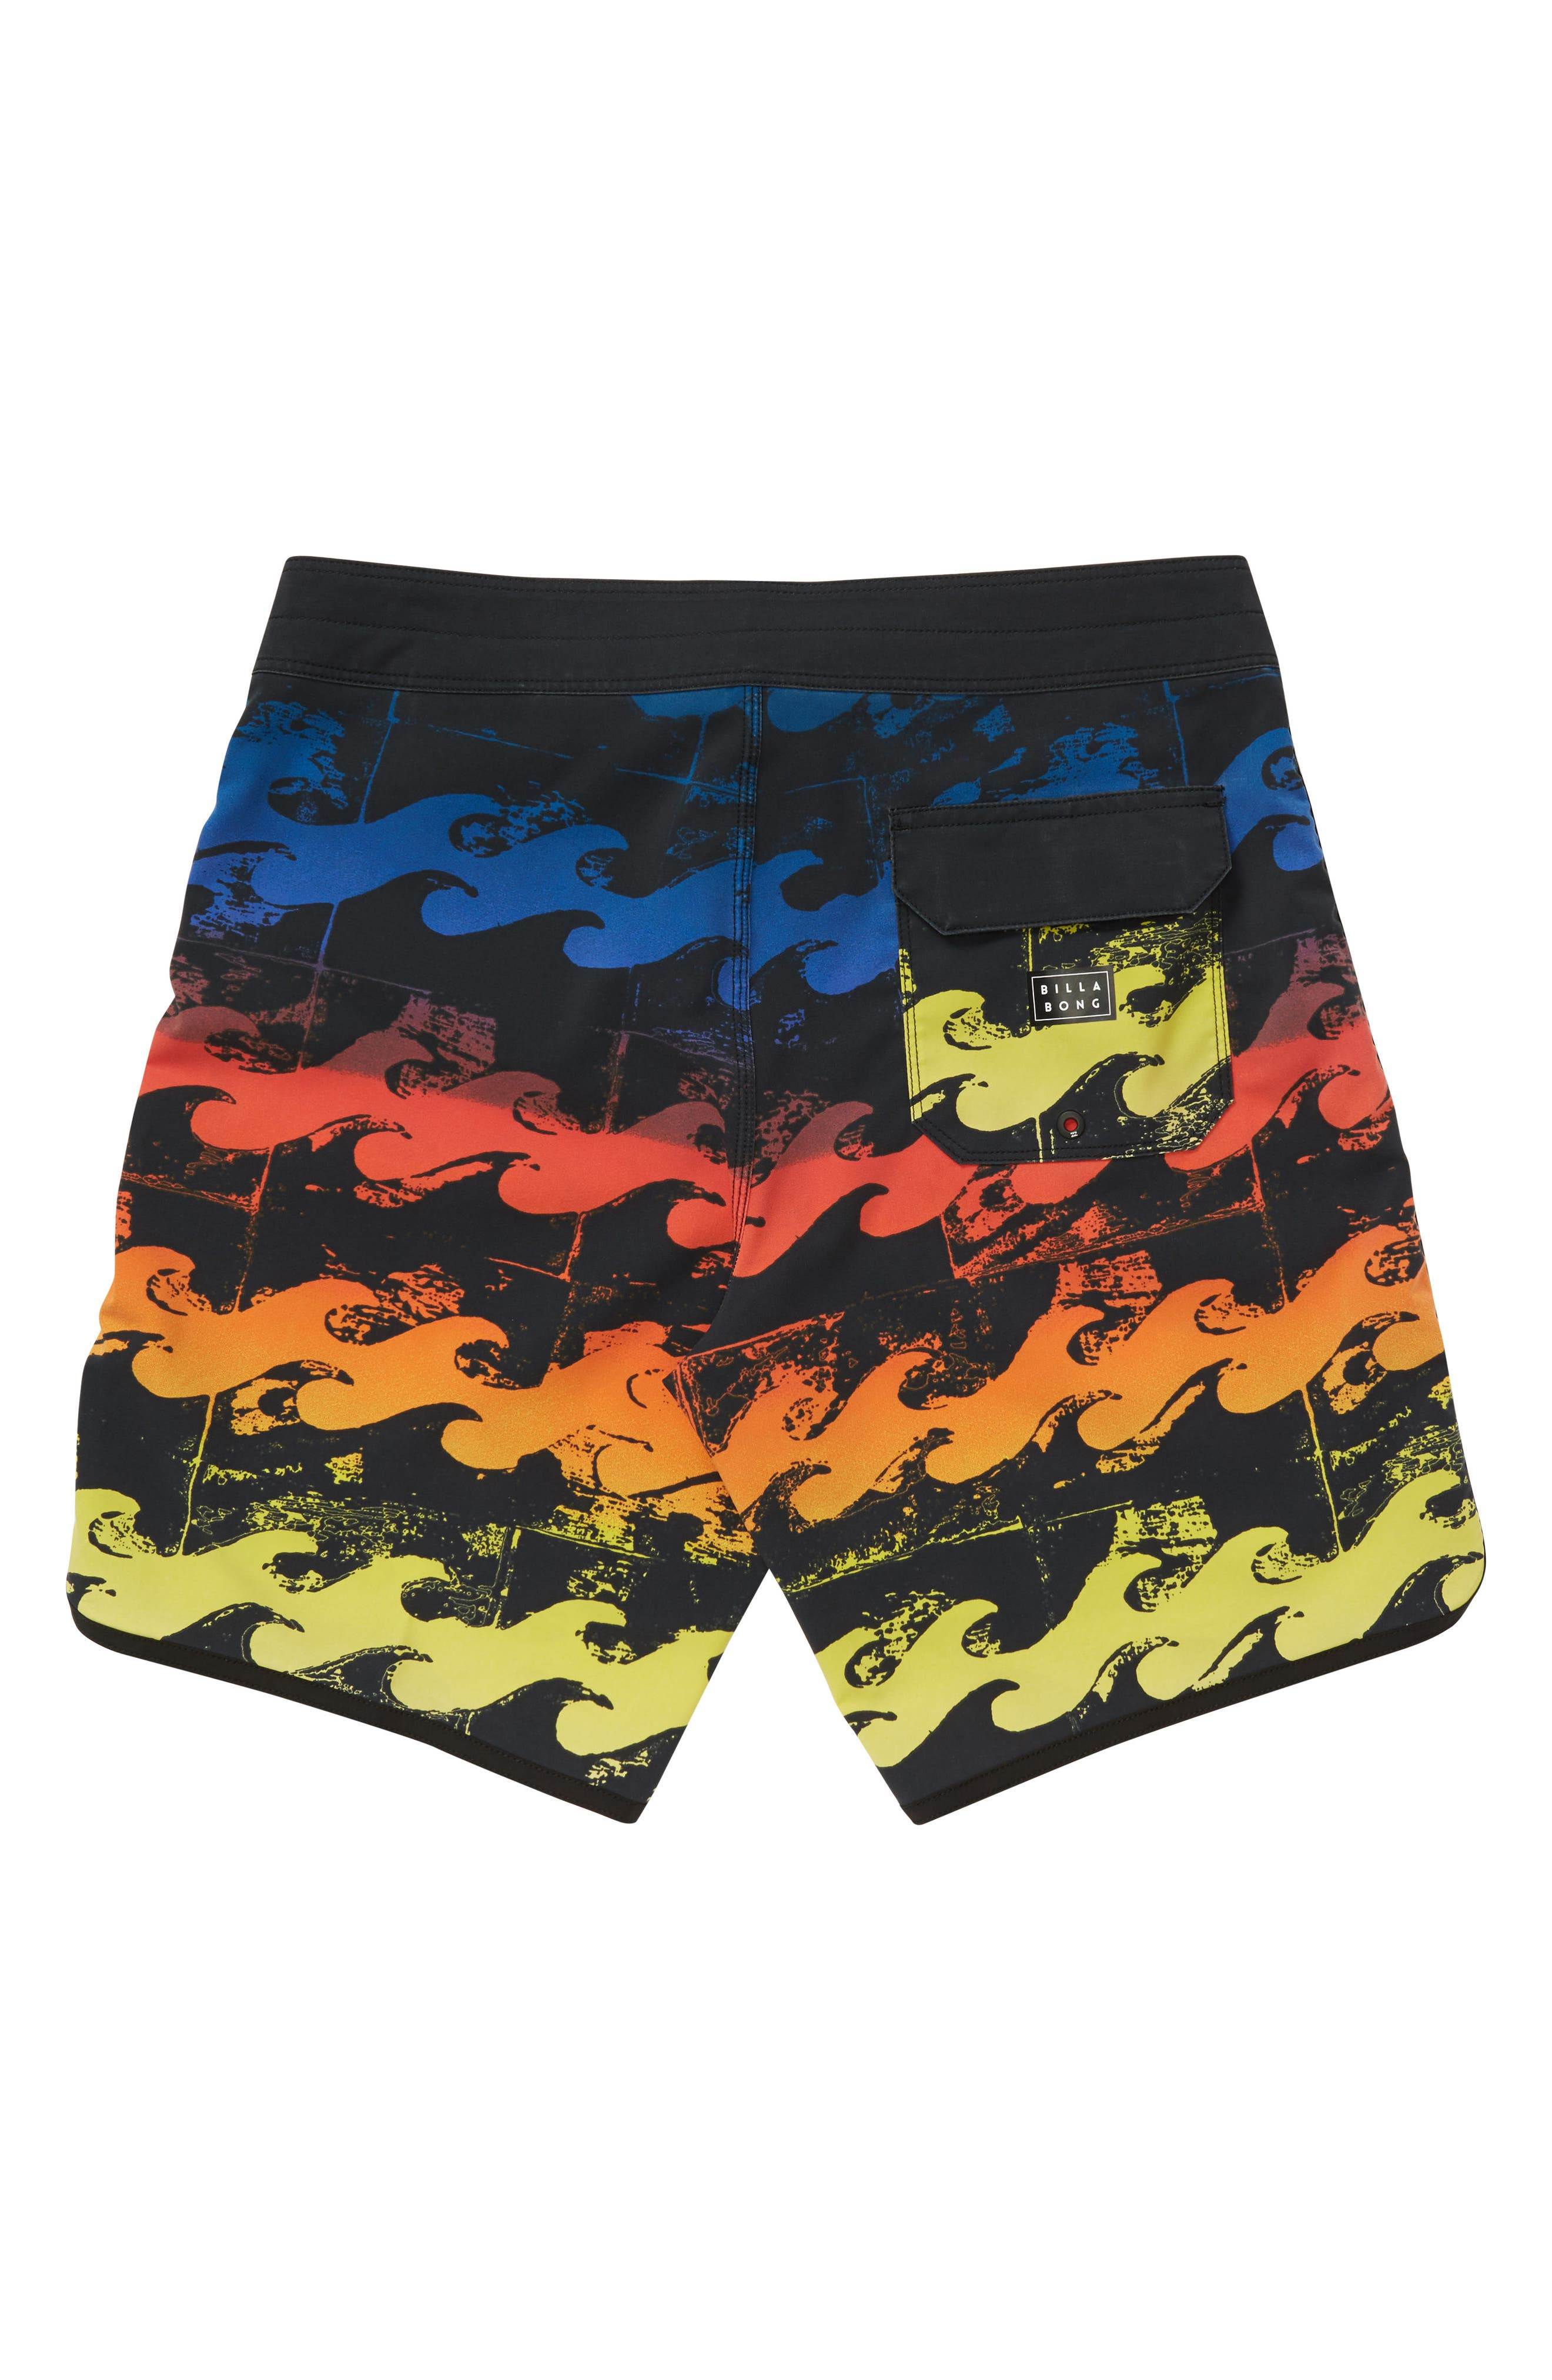 73 X Line Up Board Shorts,                             Alternate thumbnail 2, color,                             300